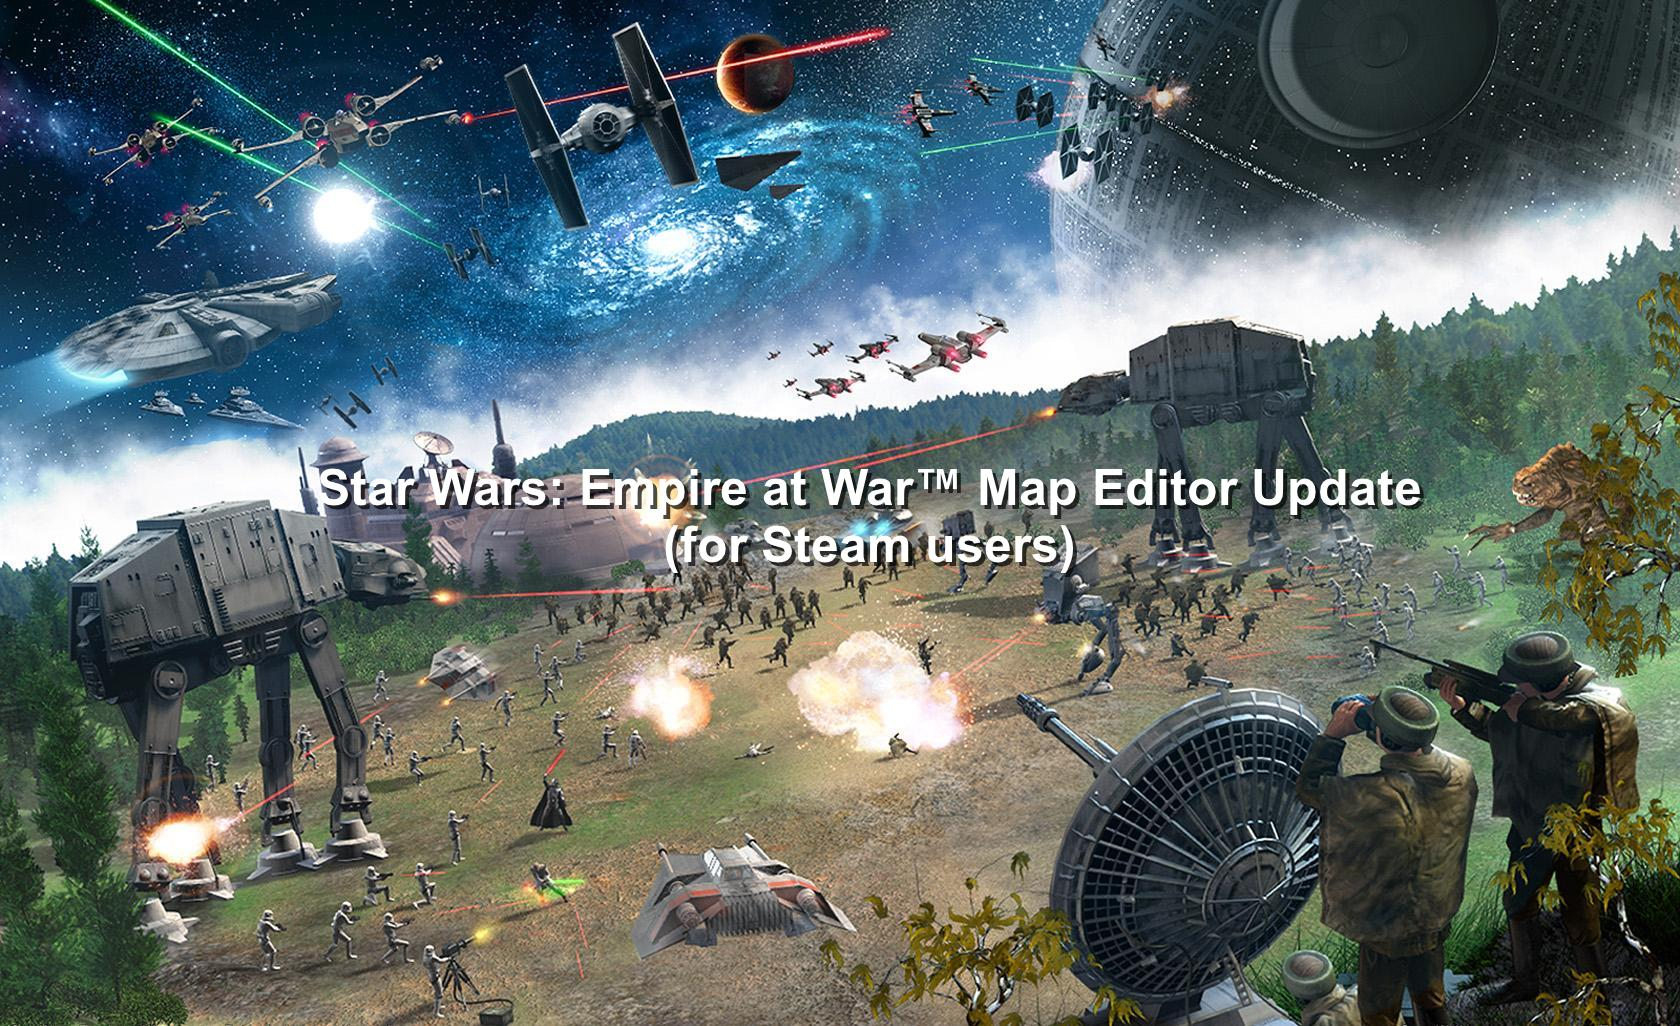 Star wars: empire at war forces of corruption game mod republic.